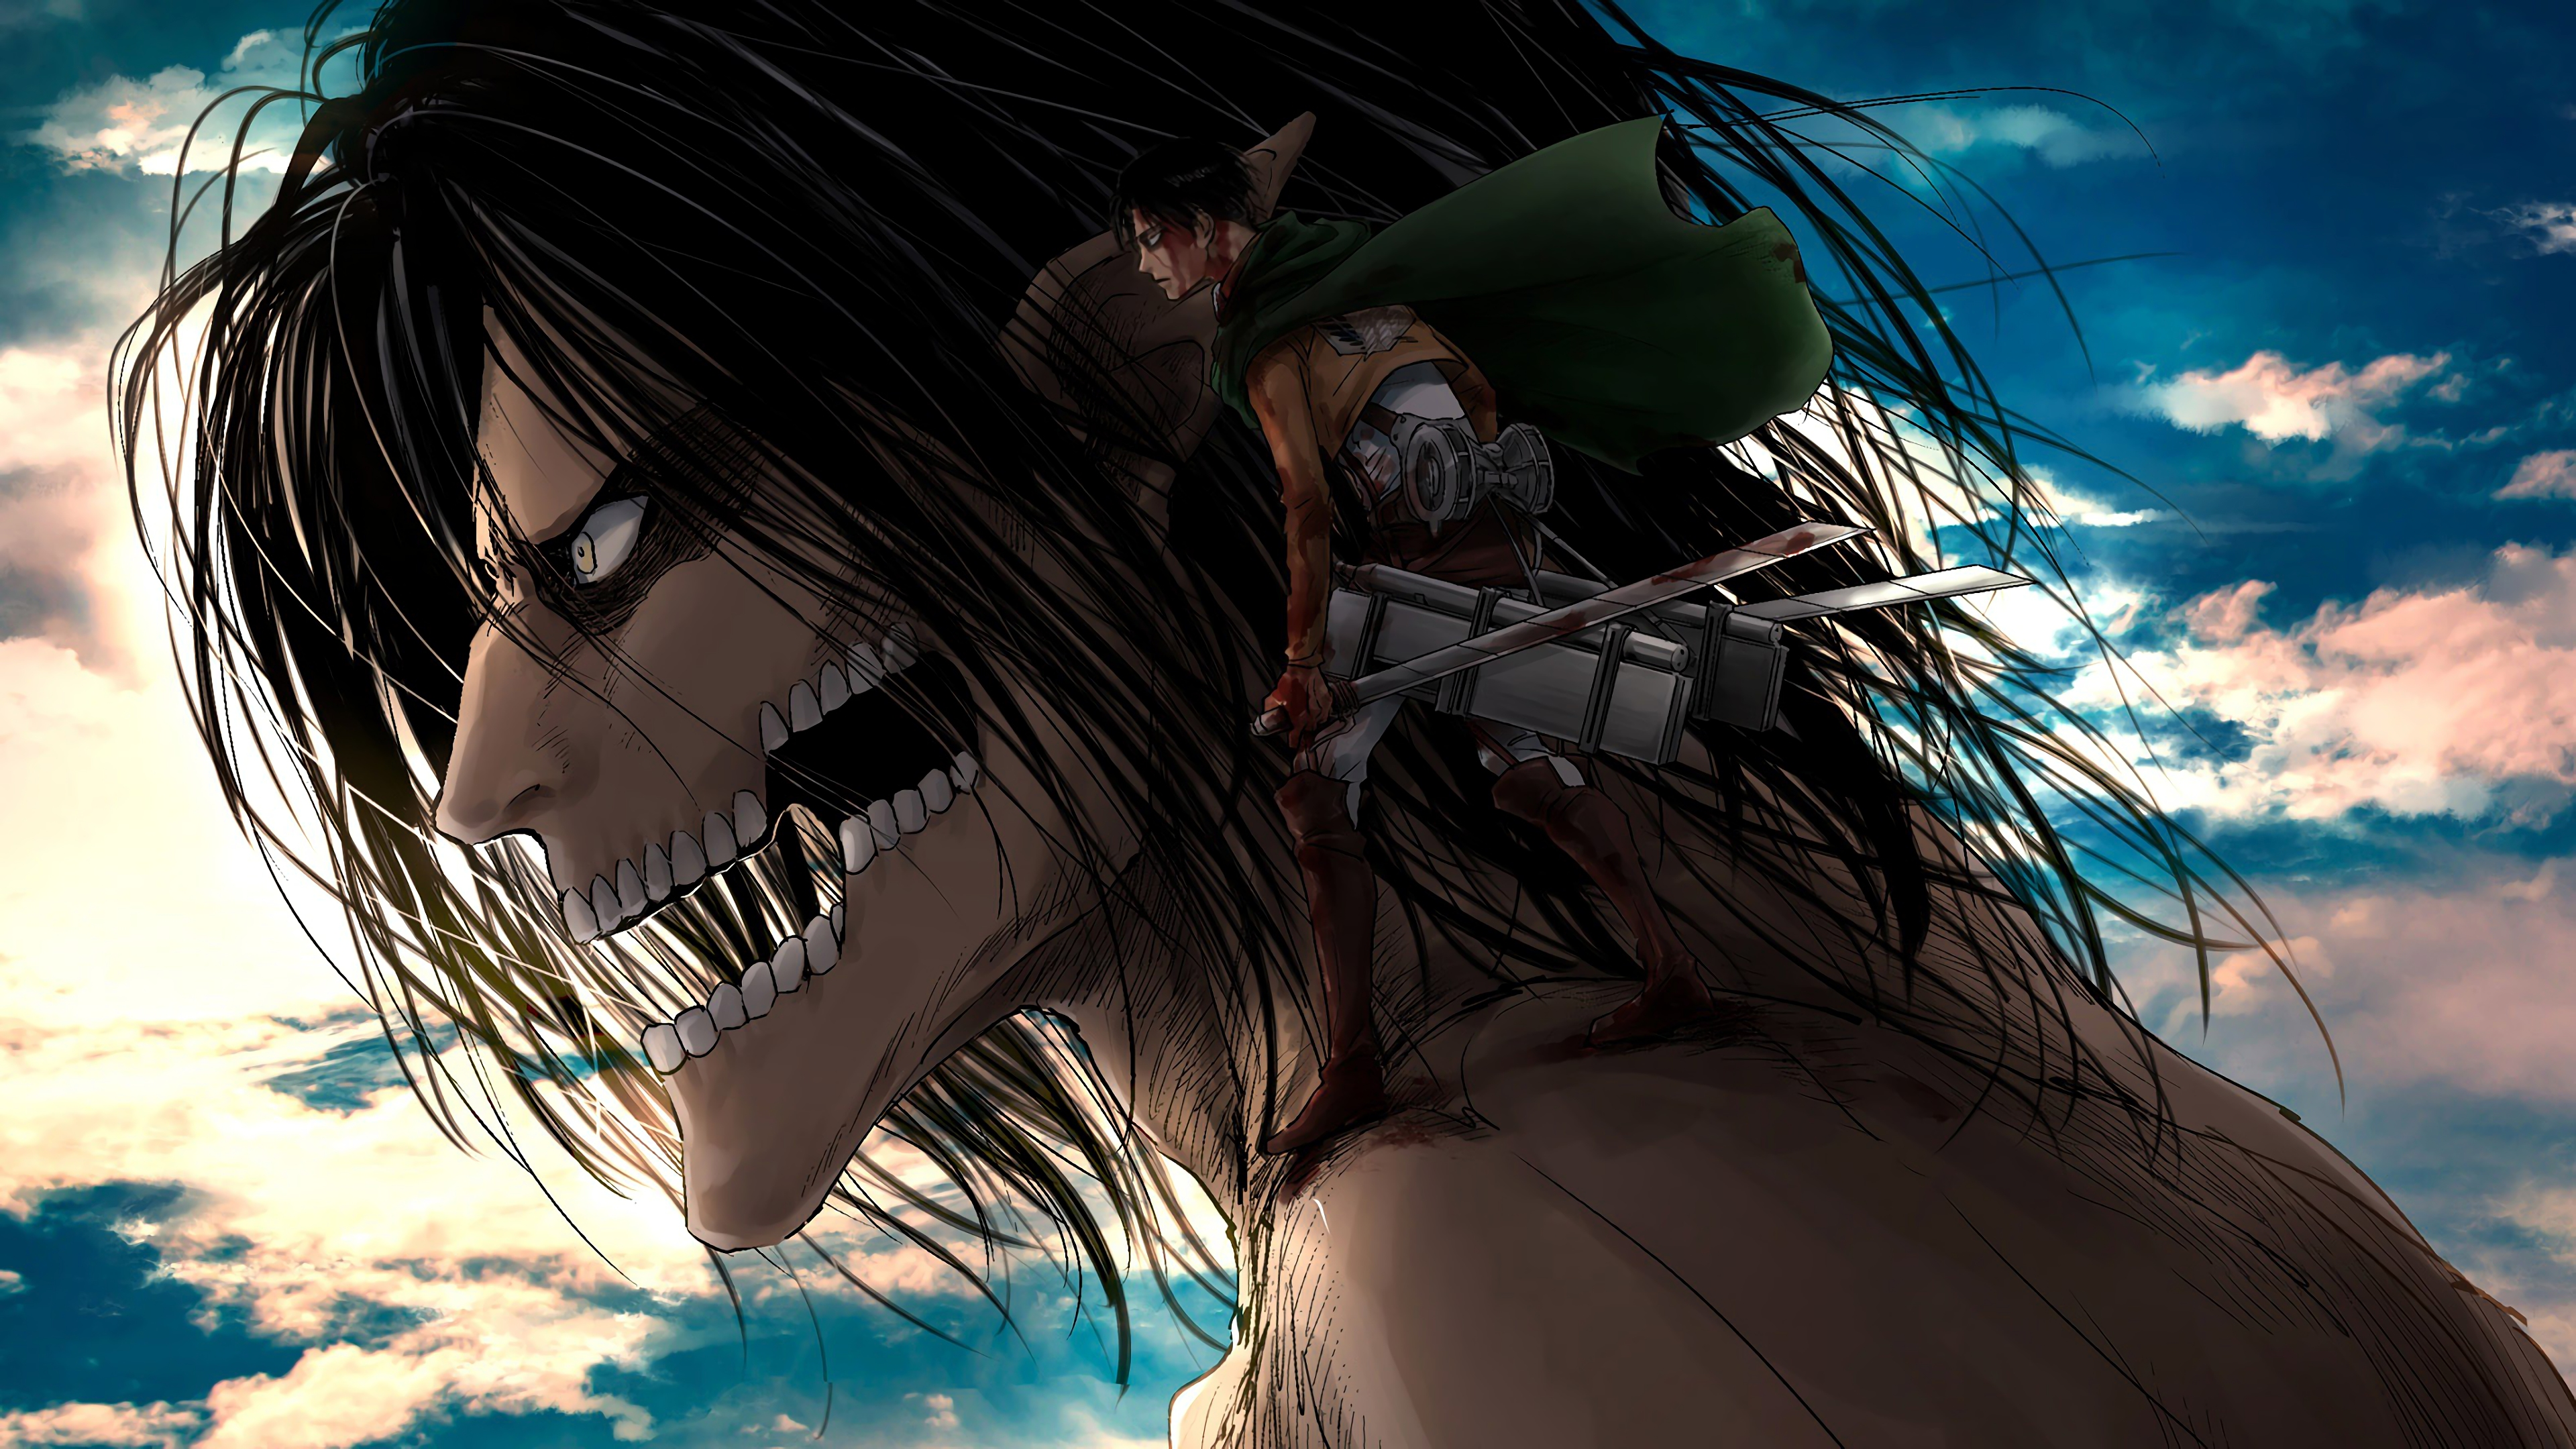 Attack On Titan 4k Ultra HD Wallpaper